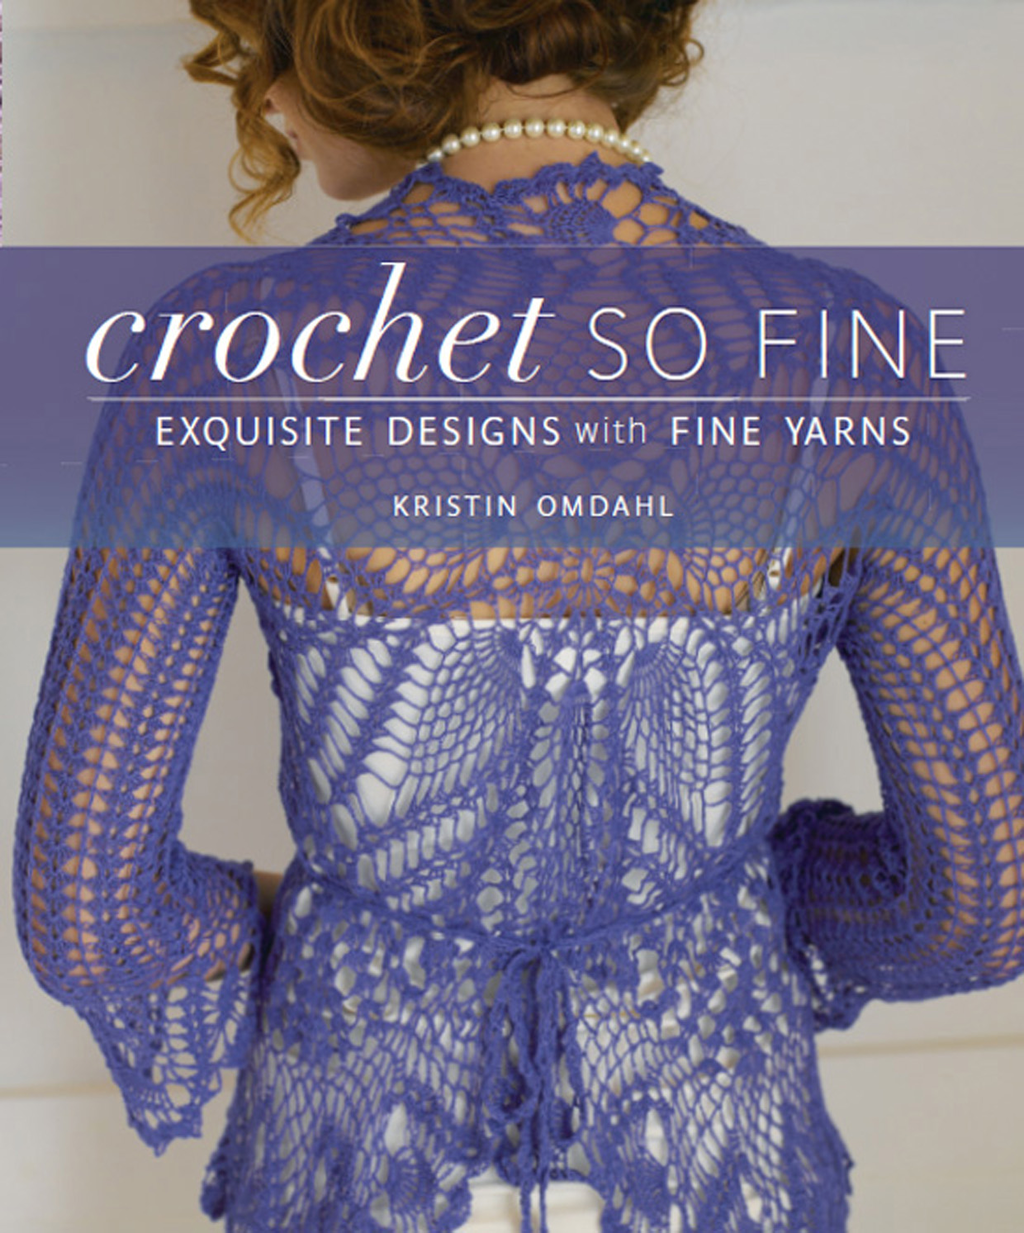 Crochet So Fine Exquisite Designs with Fine Yarns